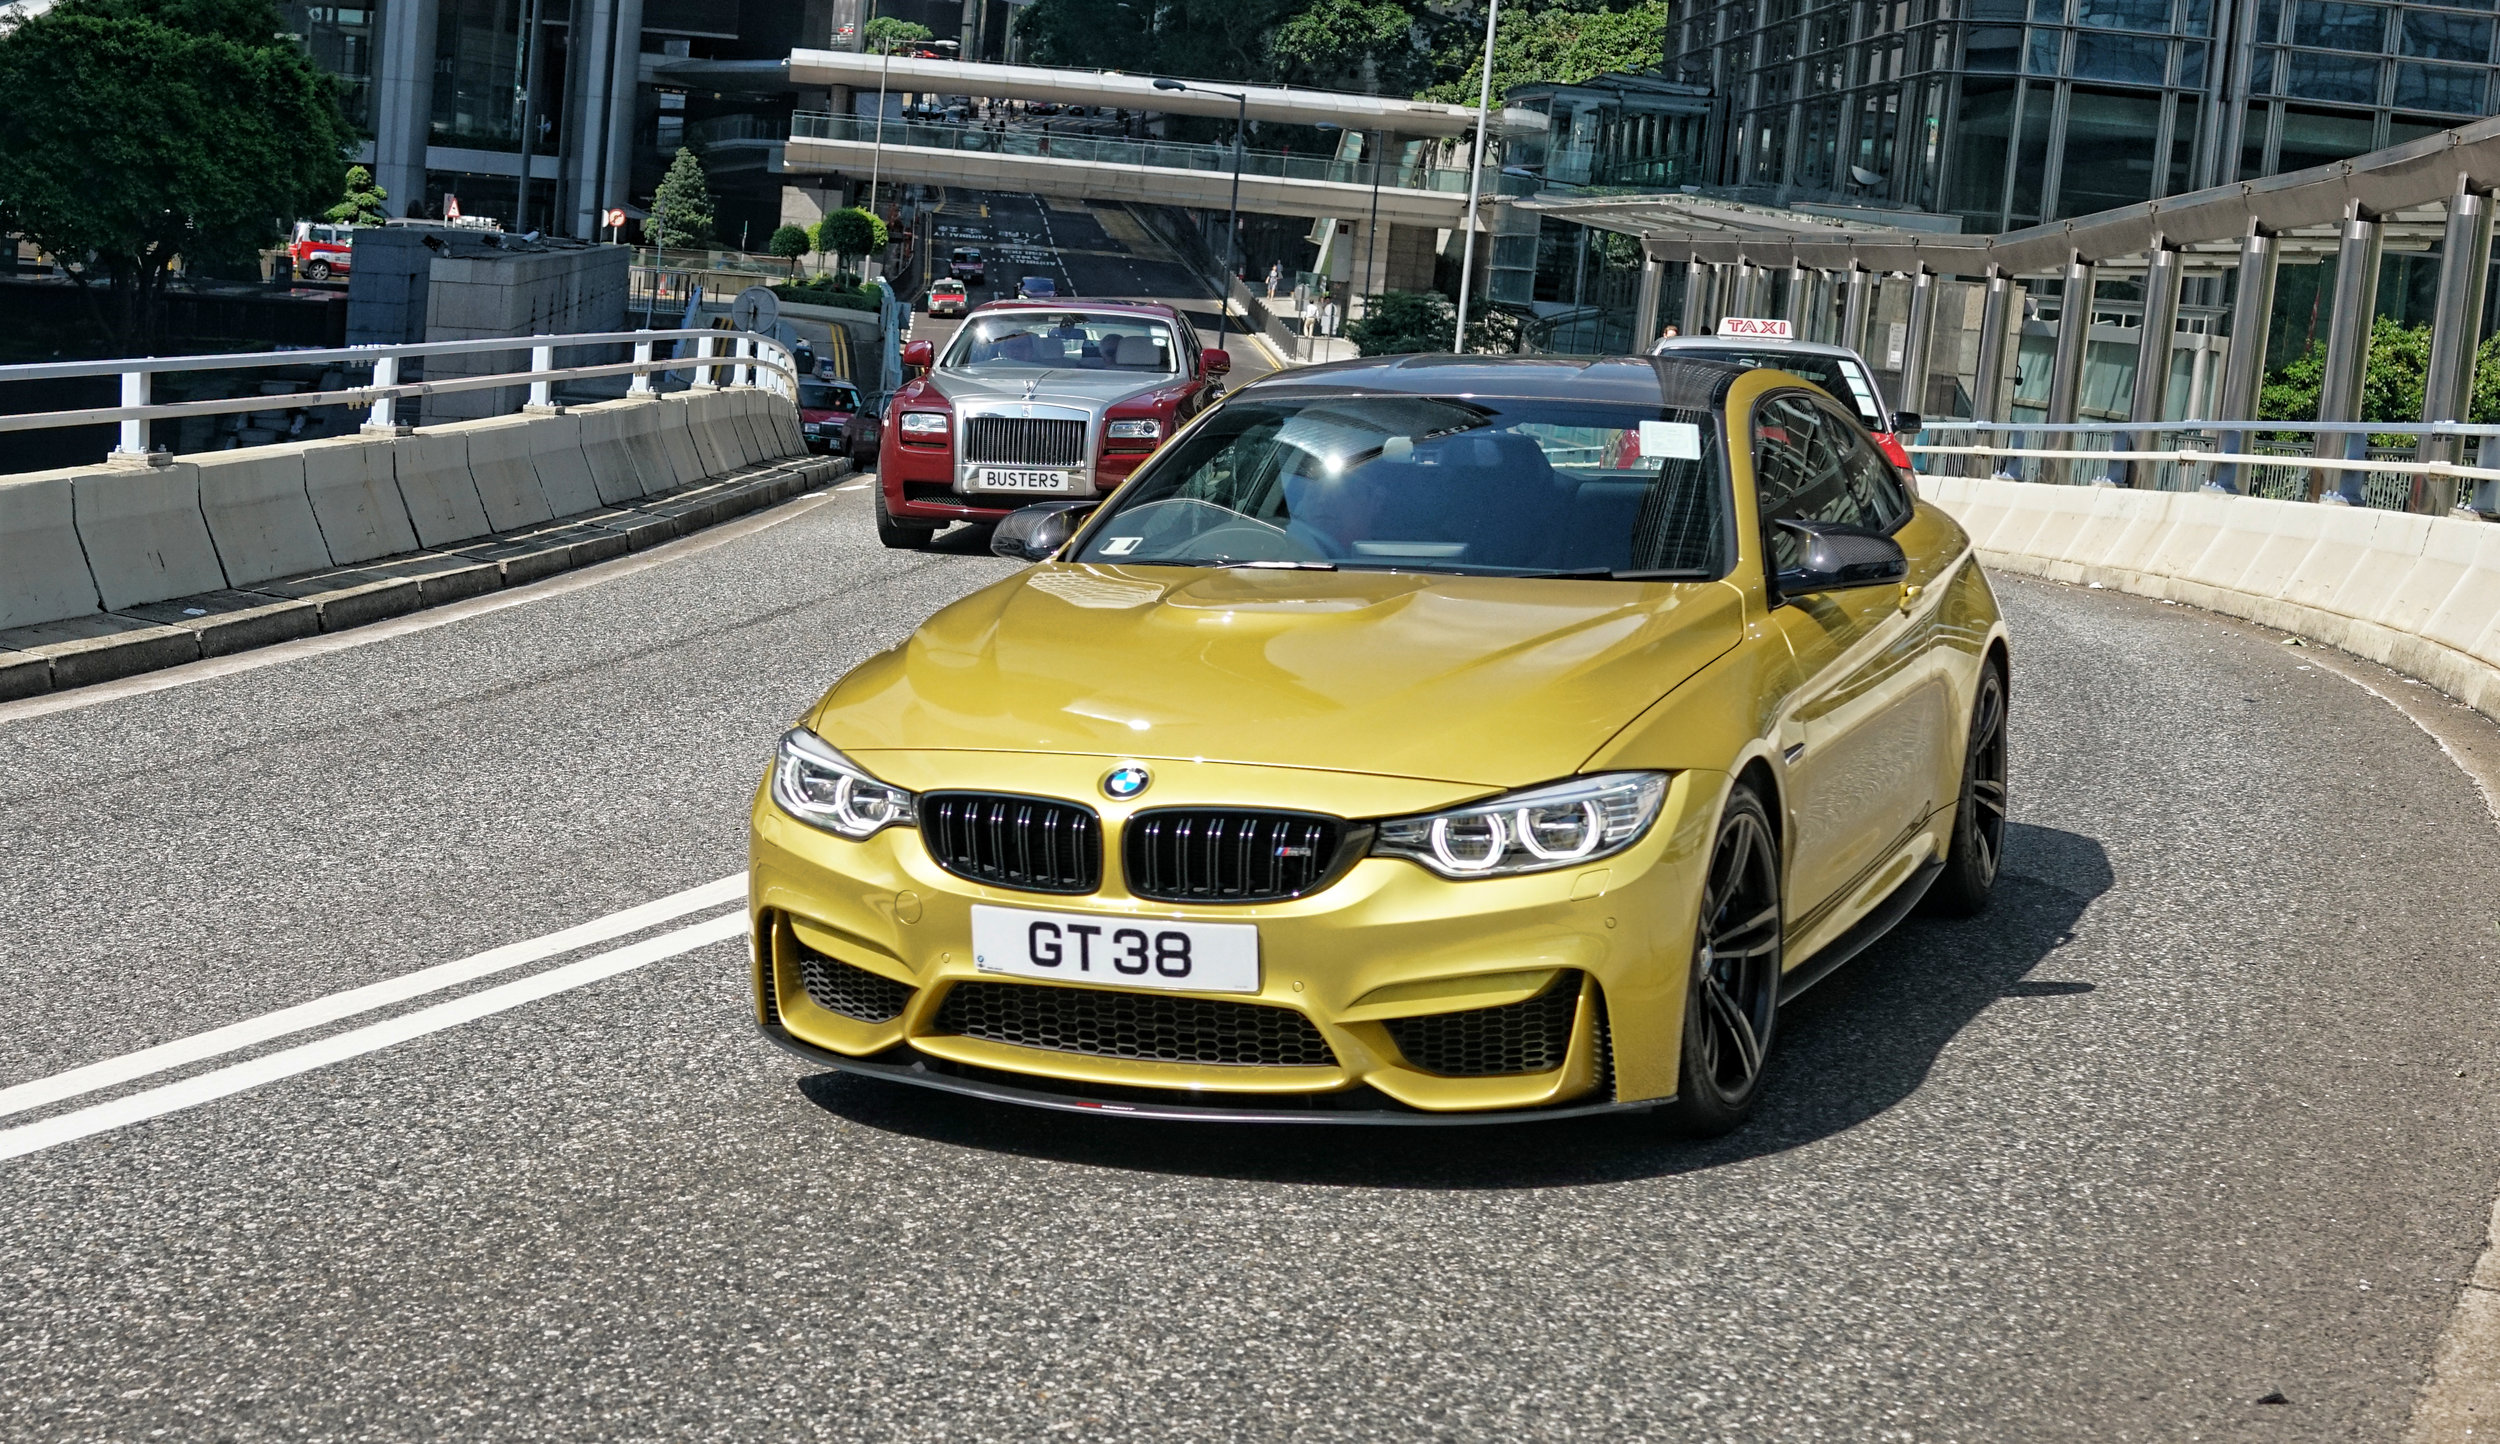 I am a huge supercar fan but at the same time I love the BMW M series cars, particularly the M3 shown above which is pretty darn sporty.... love it!